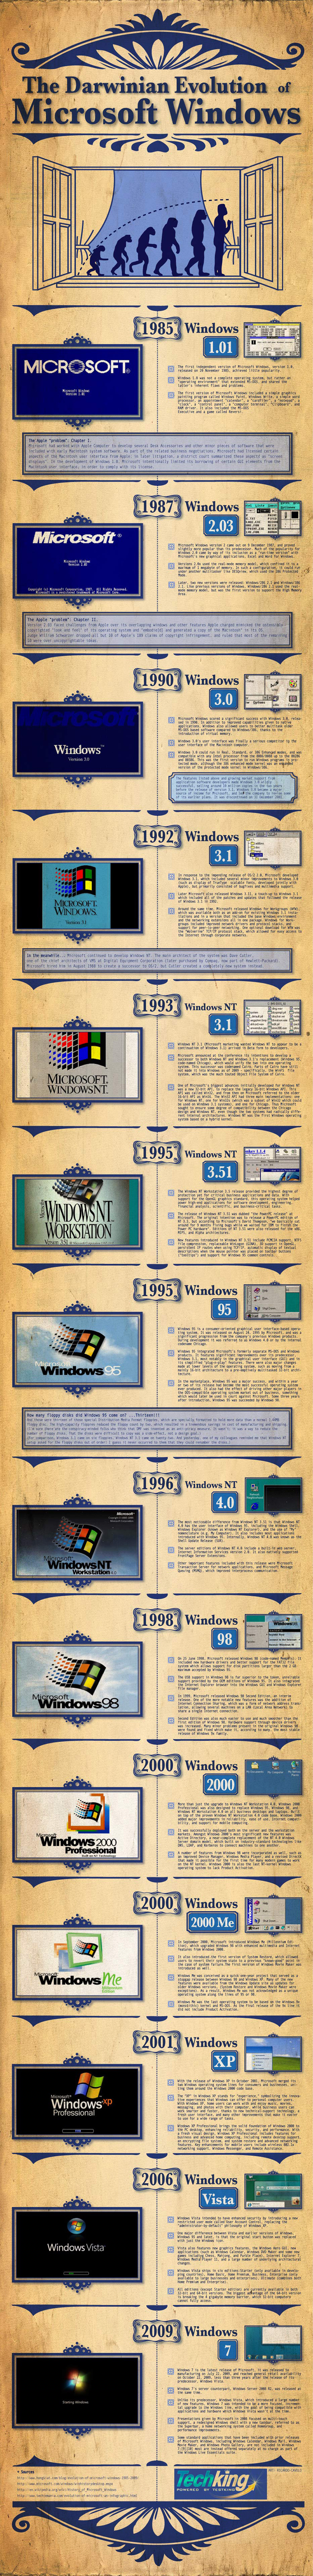 The Darwinian Evolution of Windows - Infographic